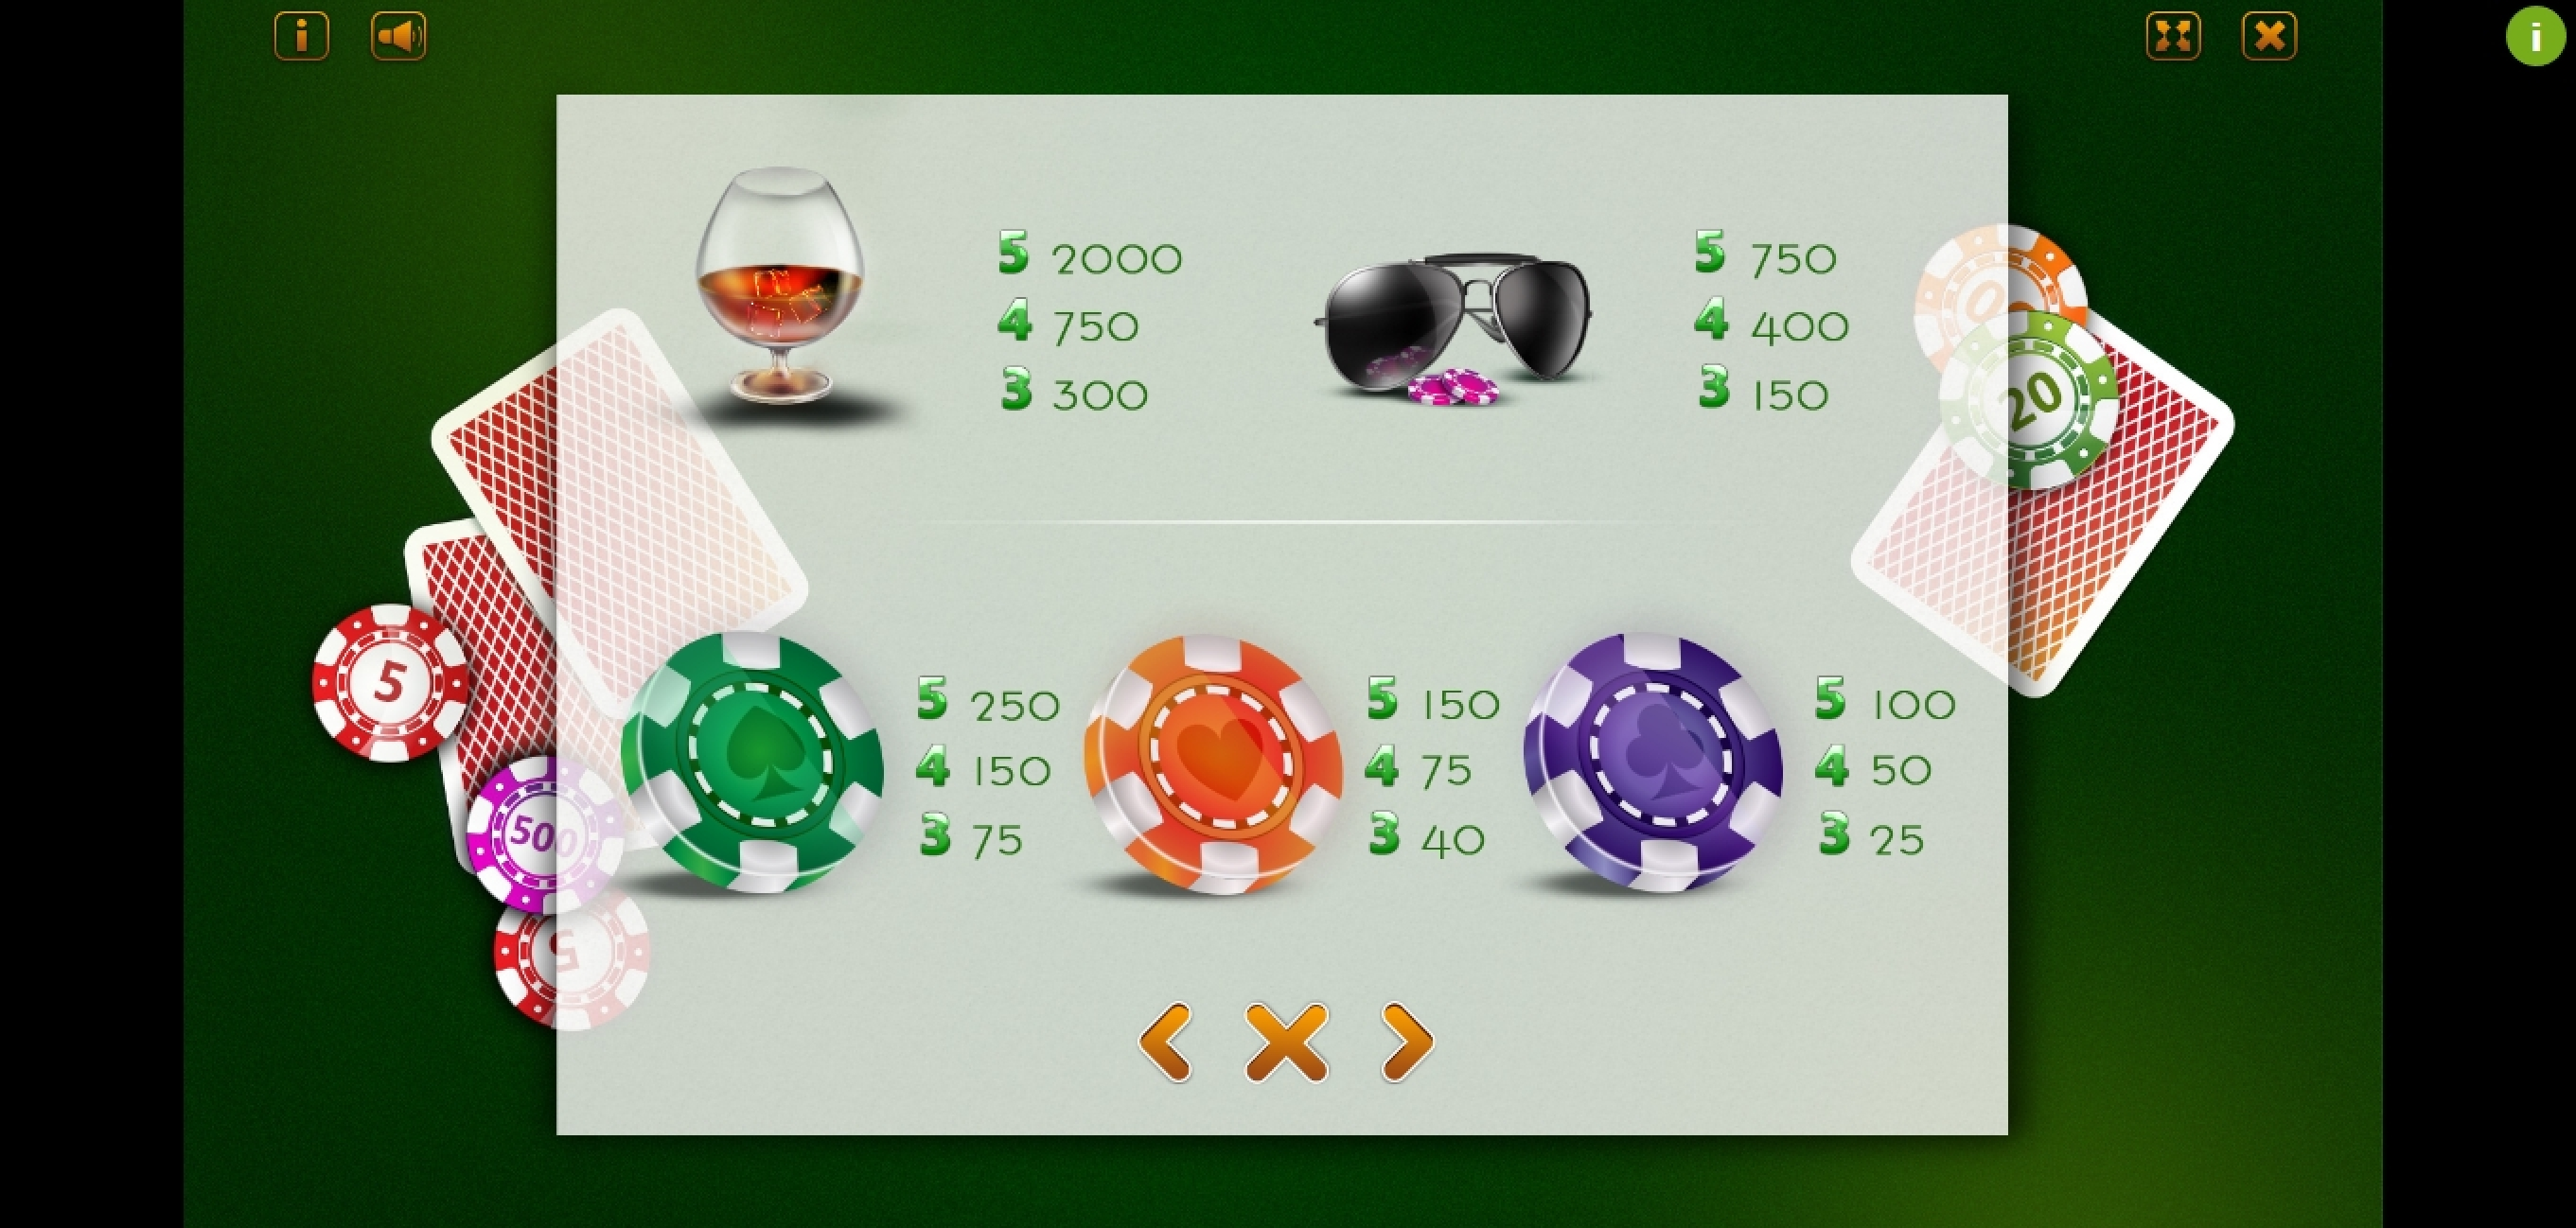 Info of Poker Room Slot Game by Charismatic